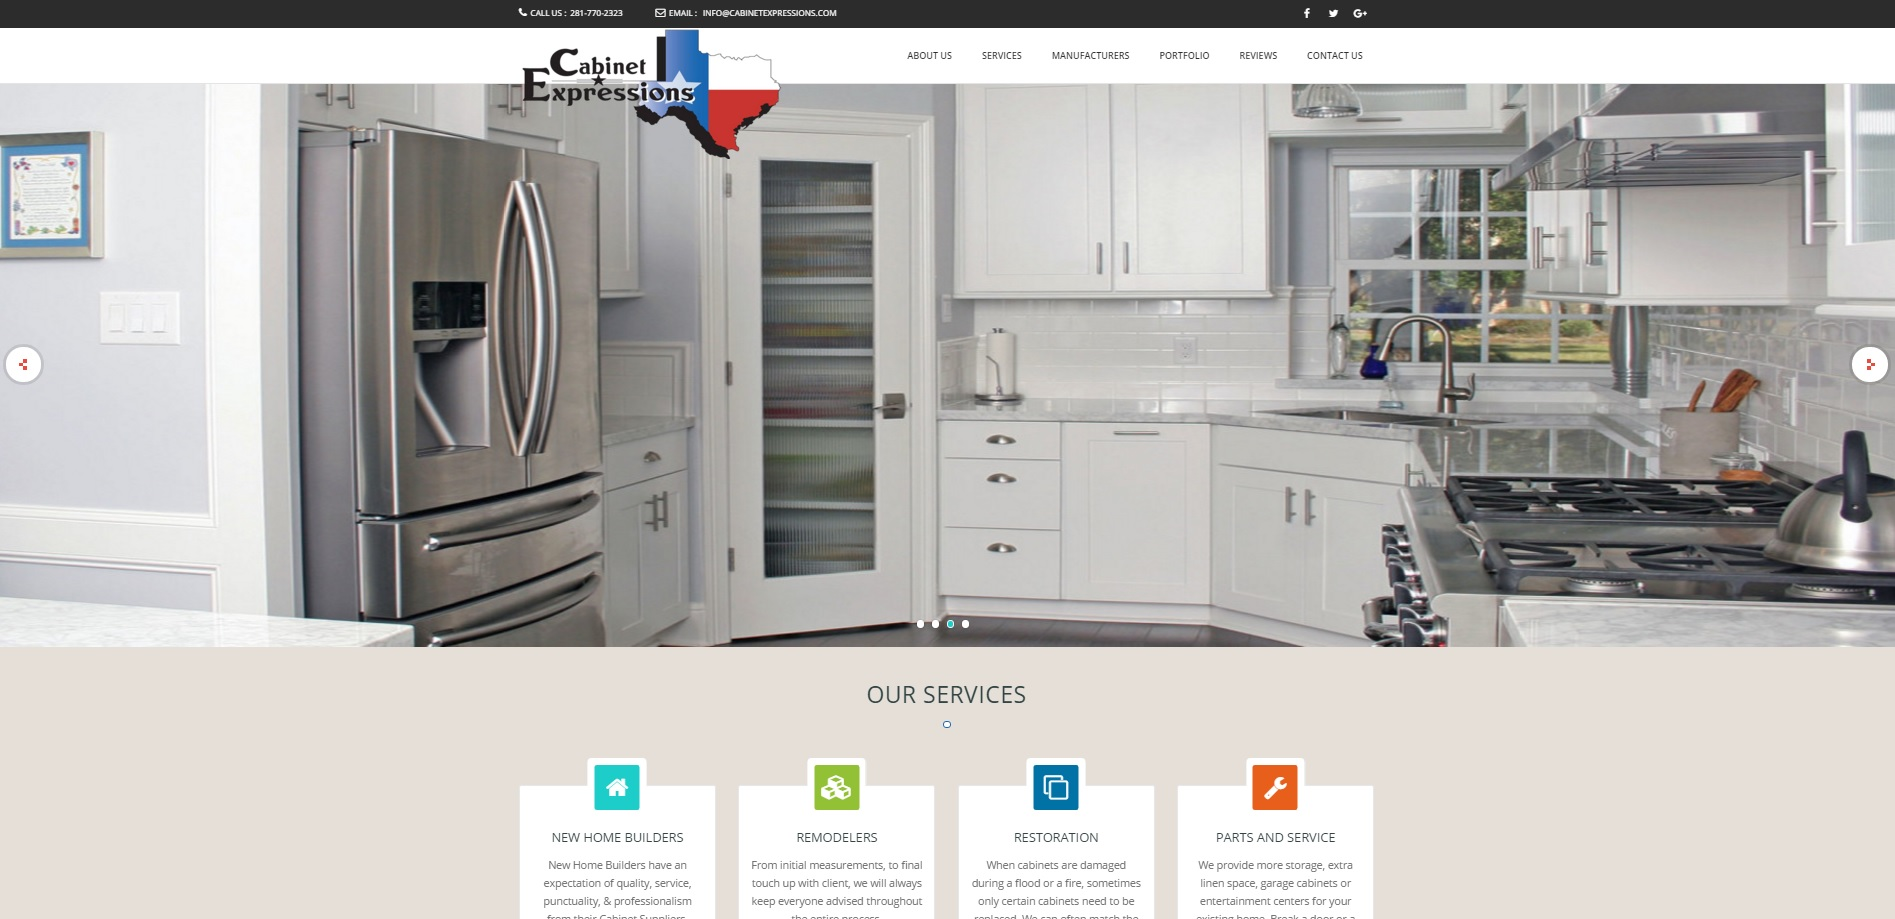 Cabinet Expressions - Select Marketing